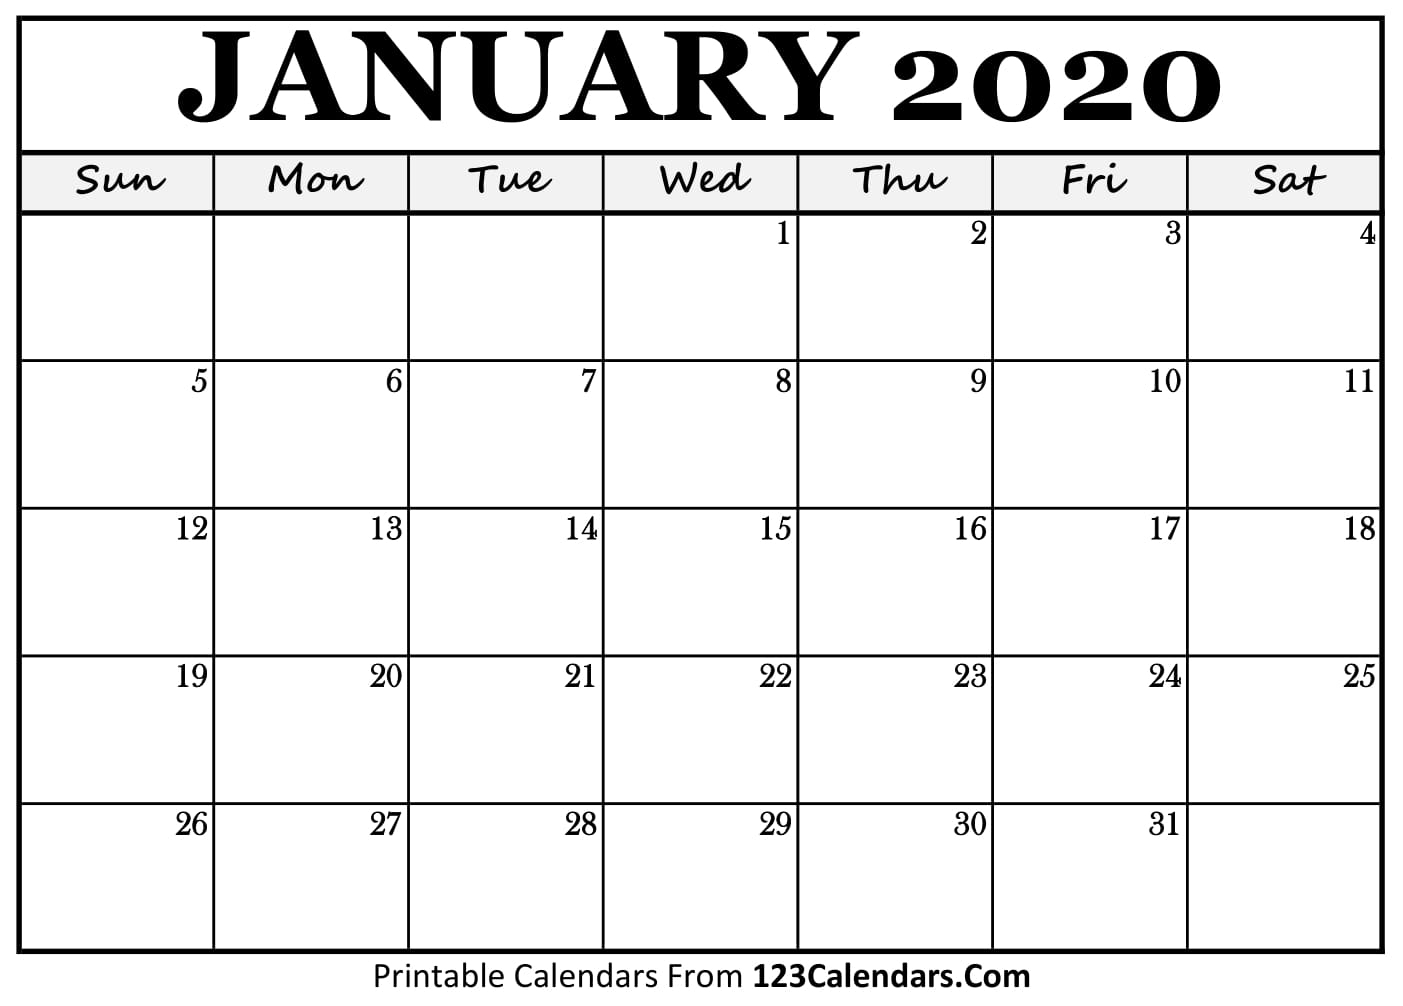 Printable Calendar You Can Type In And Print